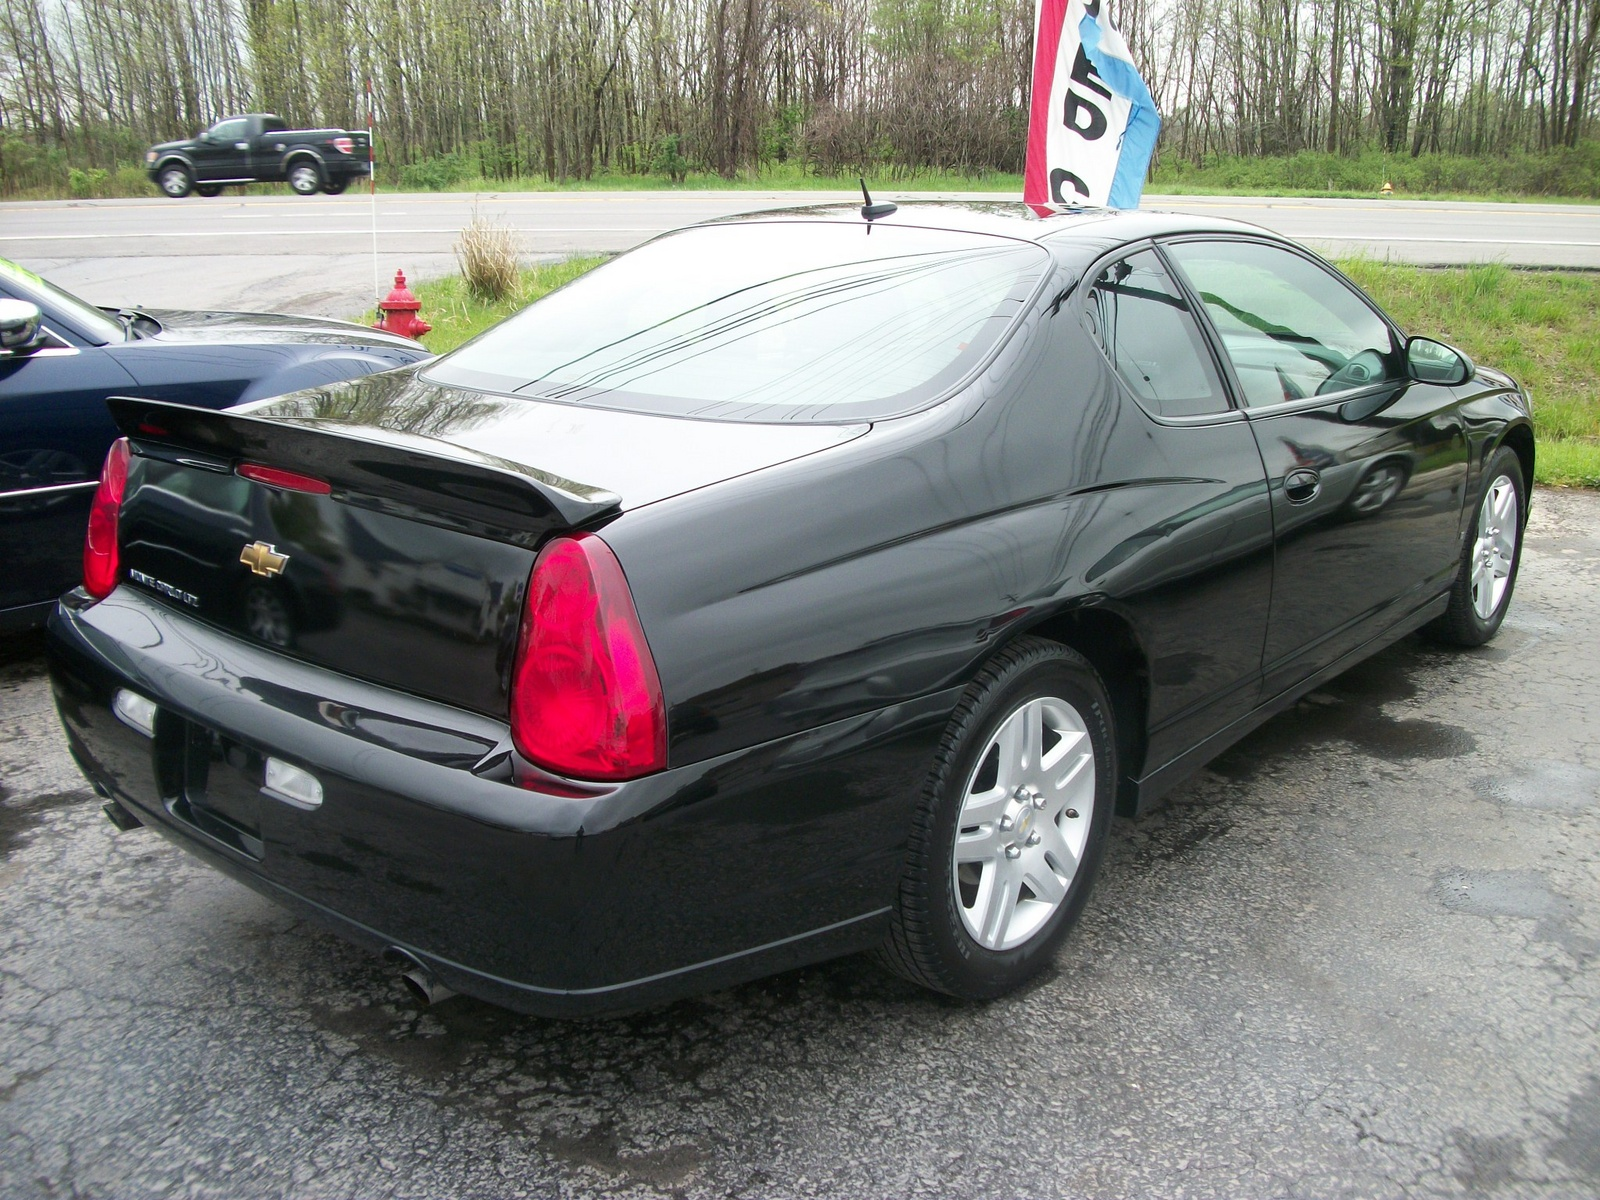 2006 chevrolet monte carlo other pictures cargurus. Black Bedroom Furniture Sets. Home Design Ideas